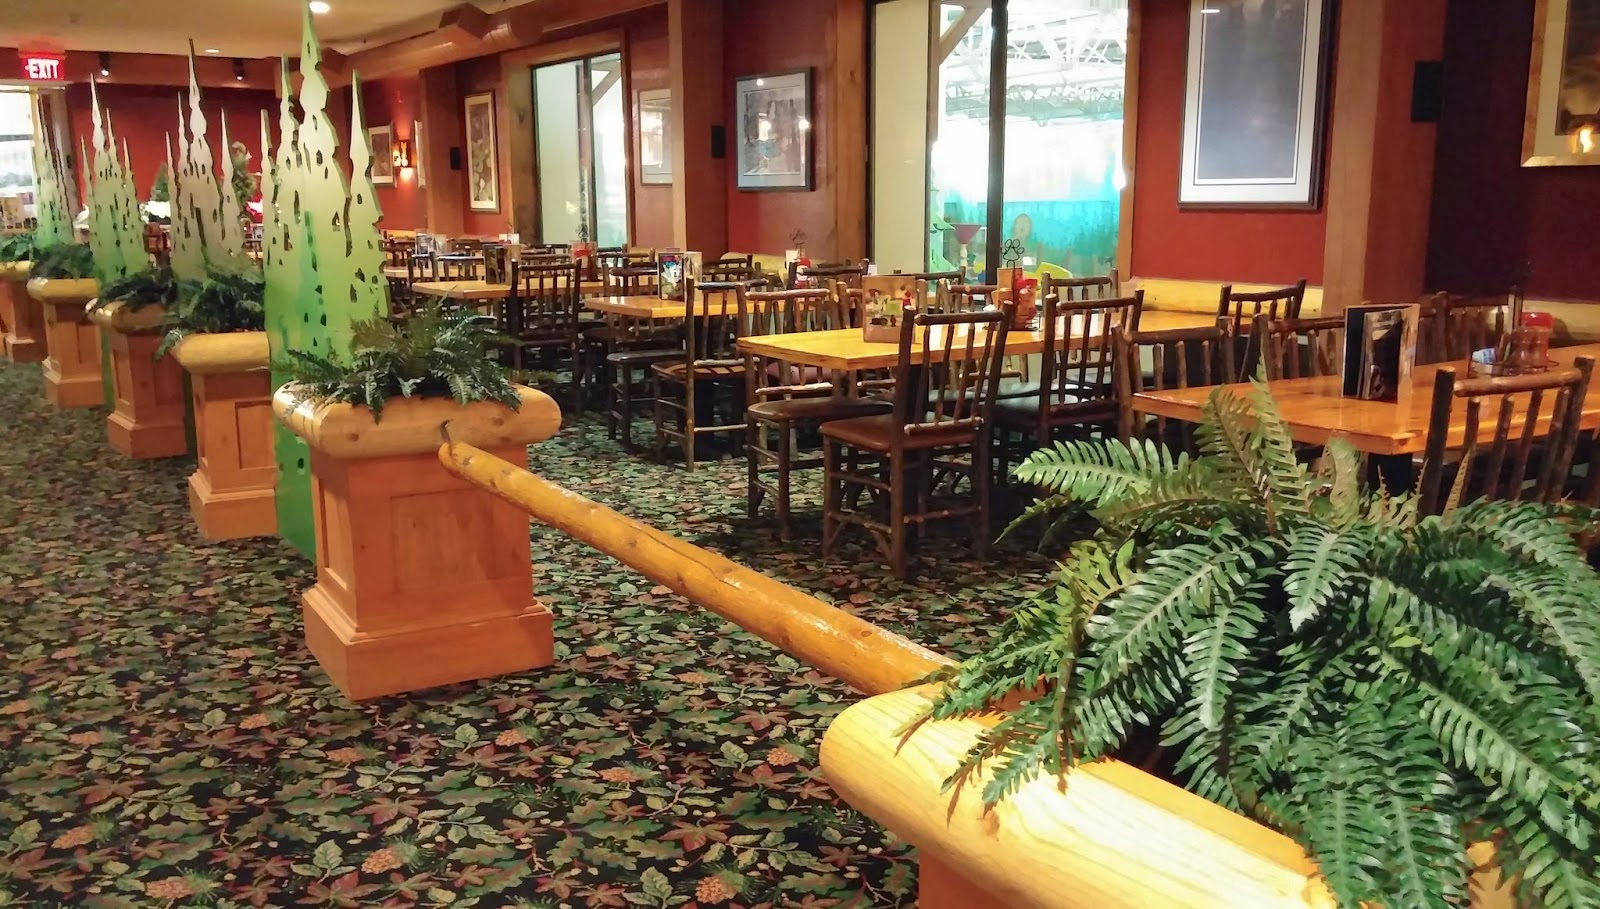 Some of the Groupon deals include dining credits that are good at any Great Wolf Lodge restaurant. Before you book, you should know that some of these deals are accompanied by a .